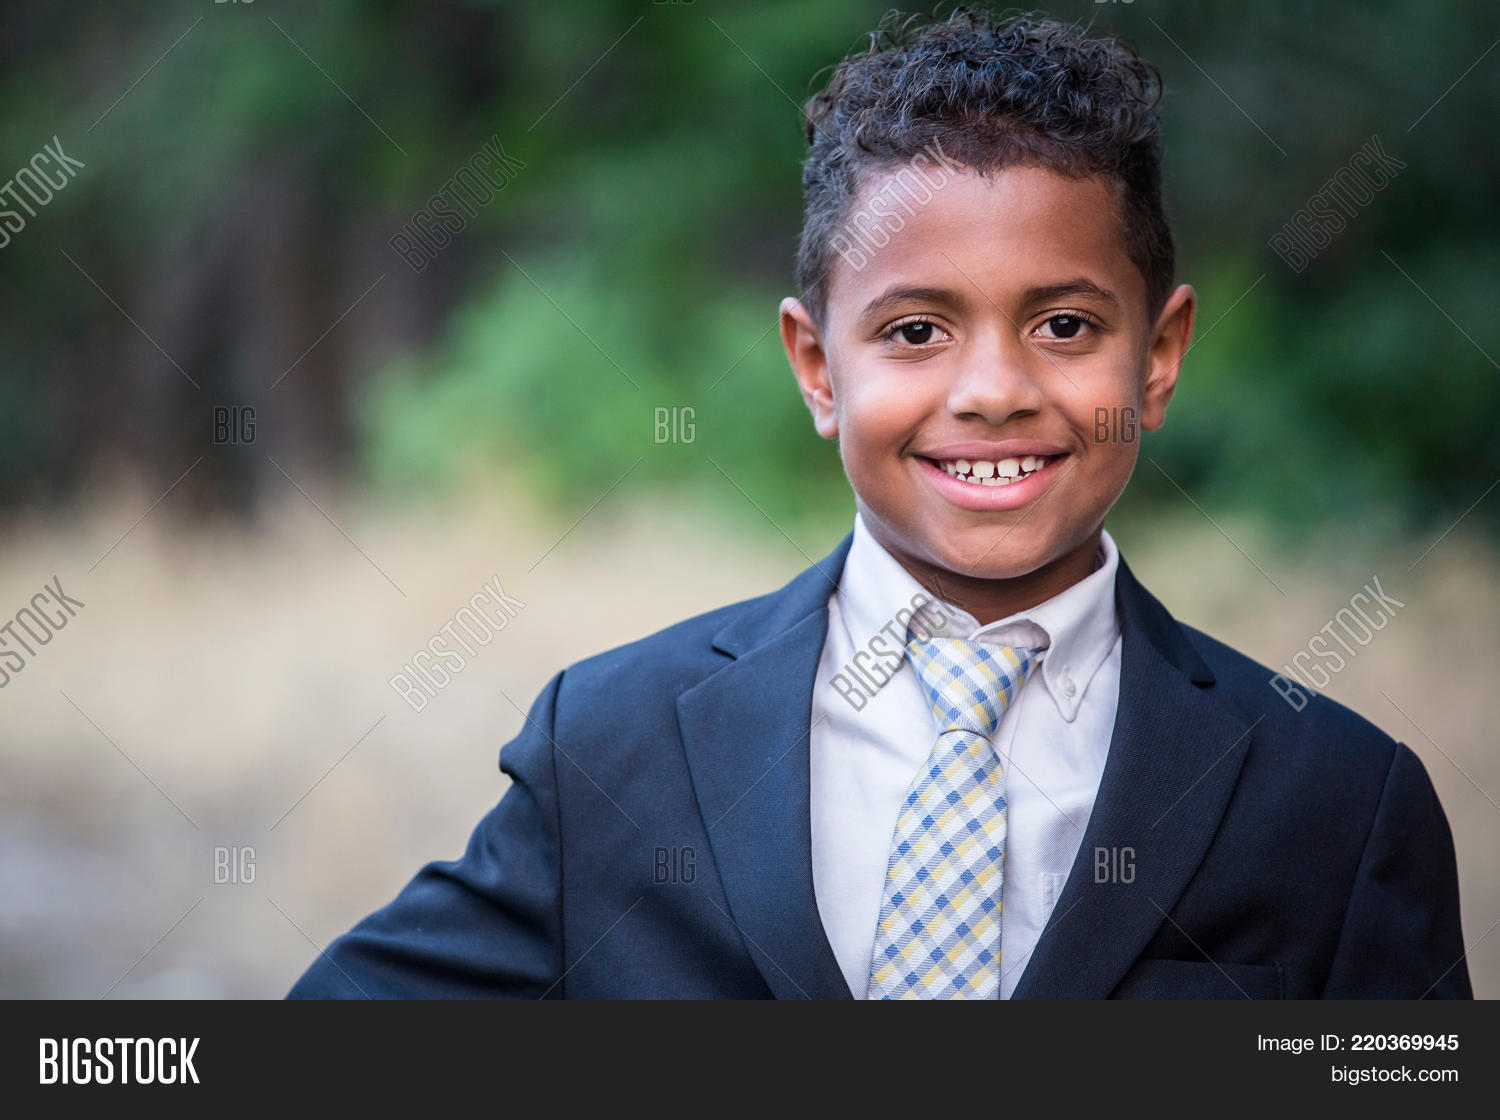 5660ef82943 Portrait of a handsome young African American boy in formal clothing.  Smiling with his arms